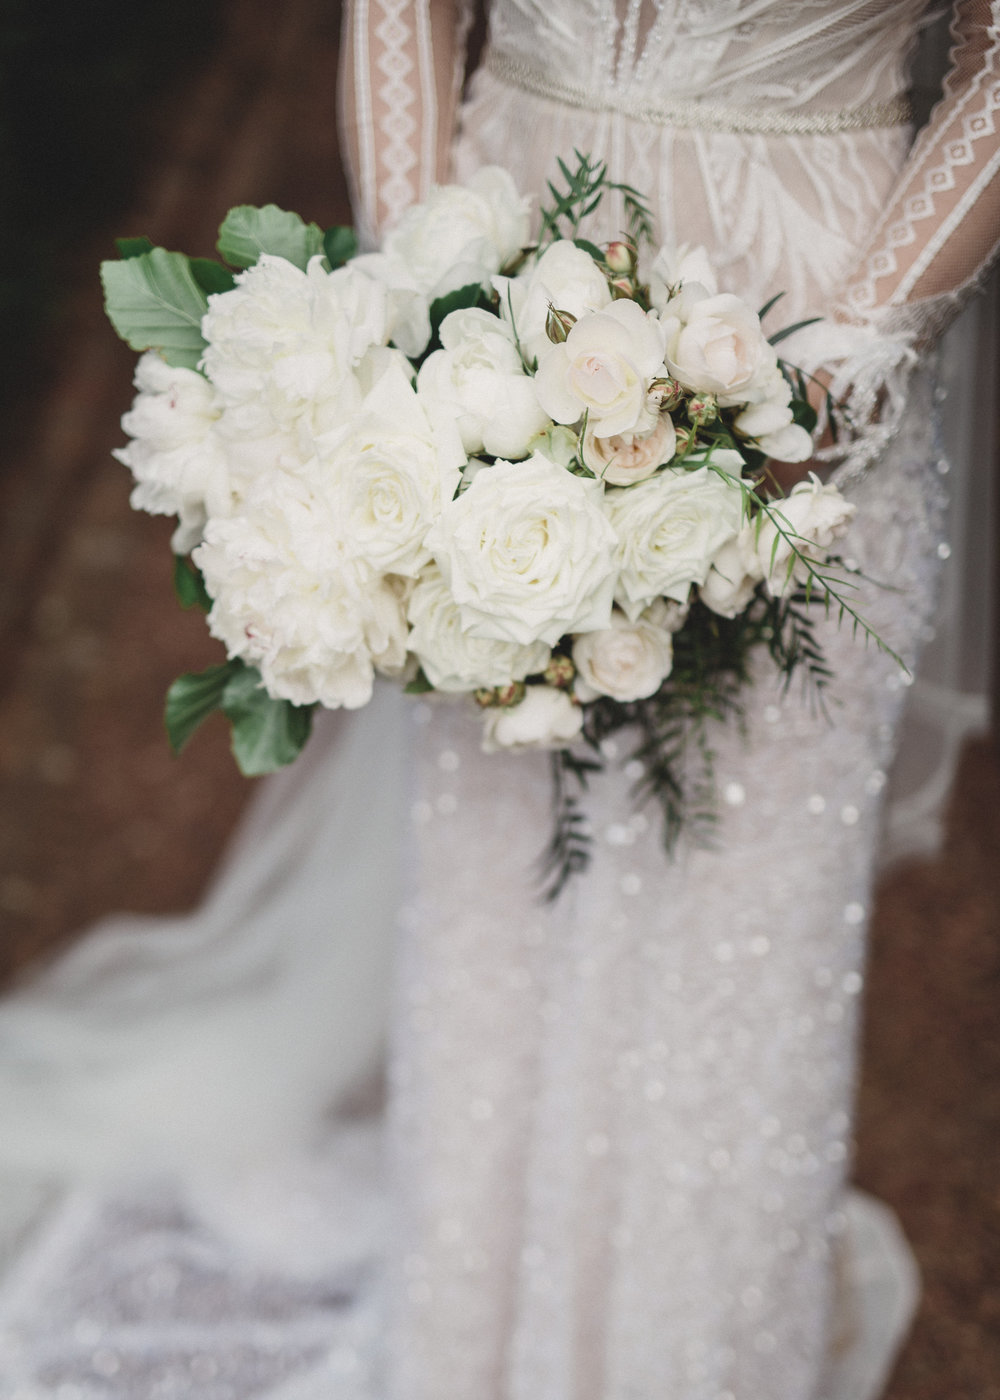 Zoe's bouquet was made up of fully blown white garden roses and peony, green beech and peppercorn arranged into a luxe garden inspired unstructured bouquet.